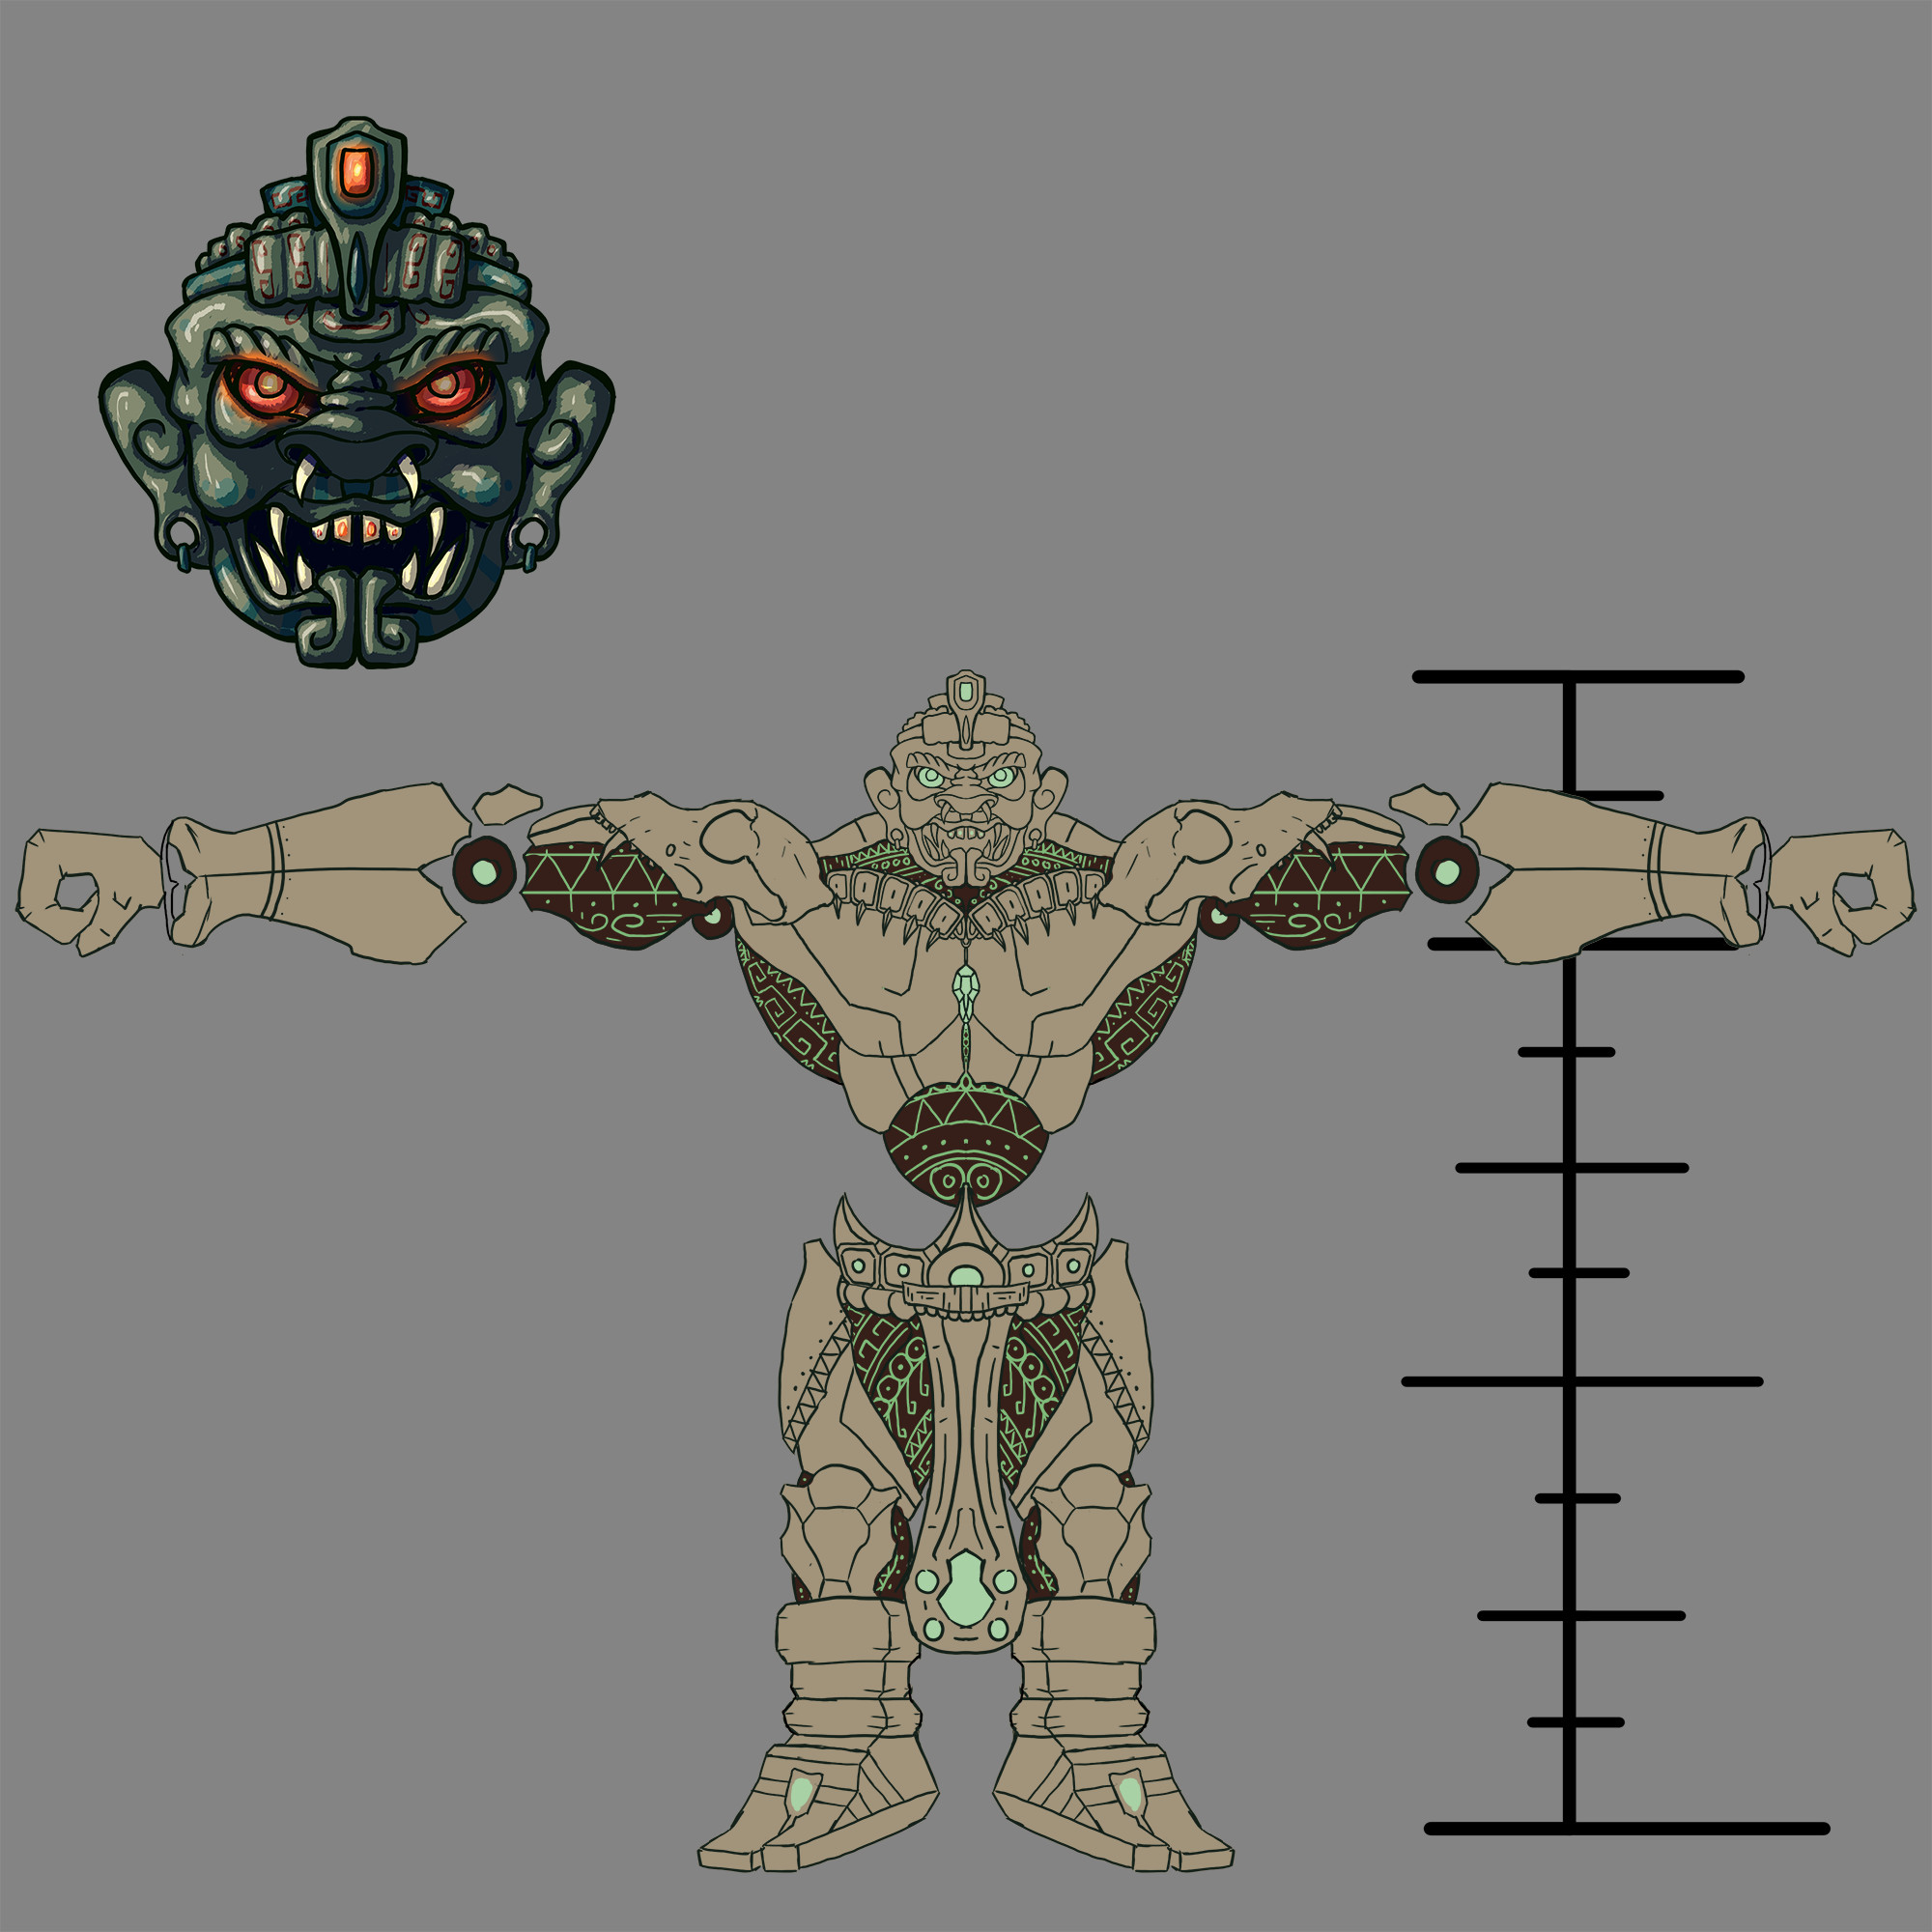 Modeling sheet (front view).